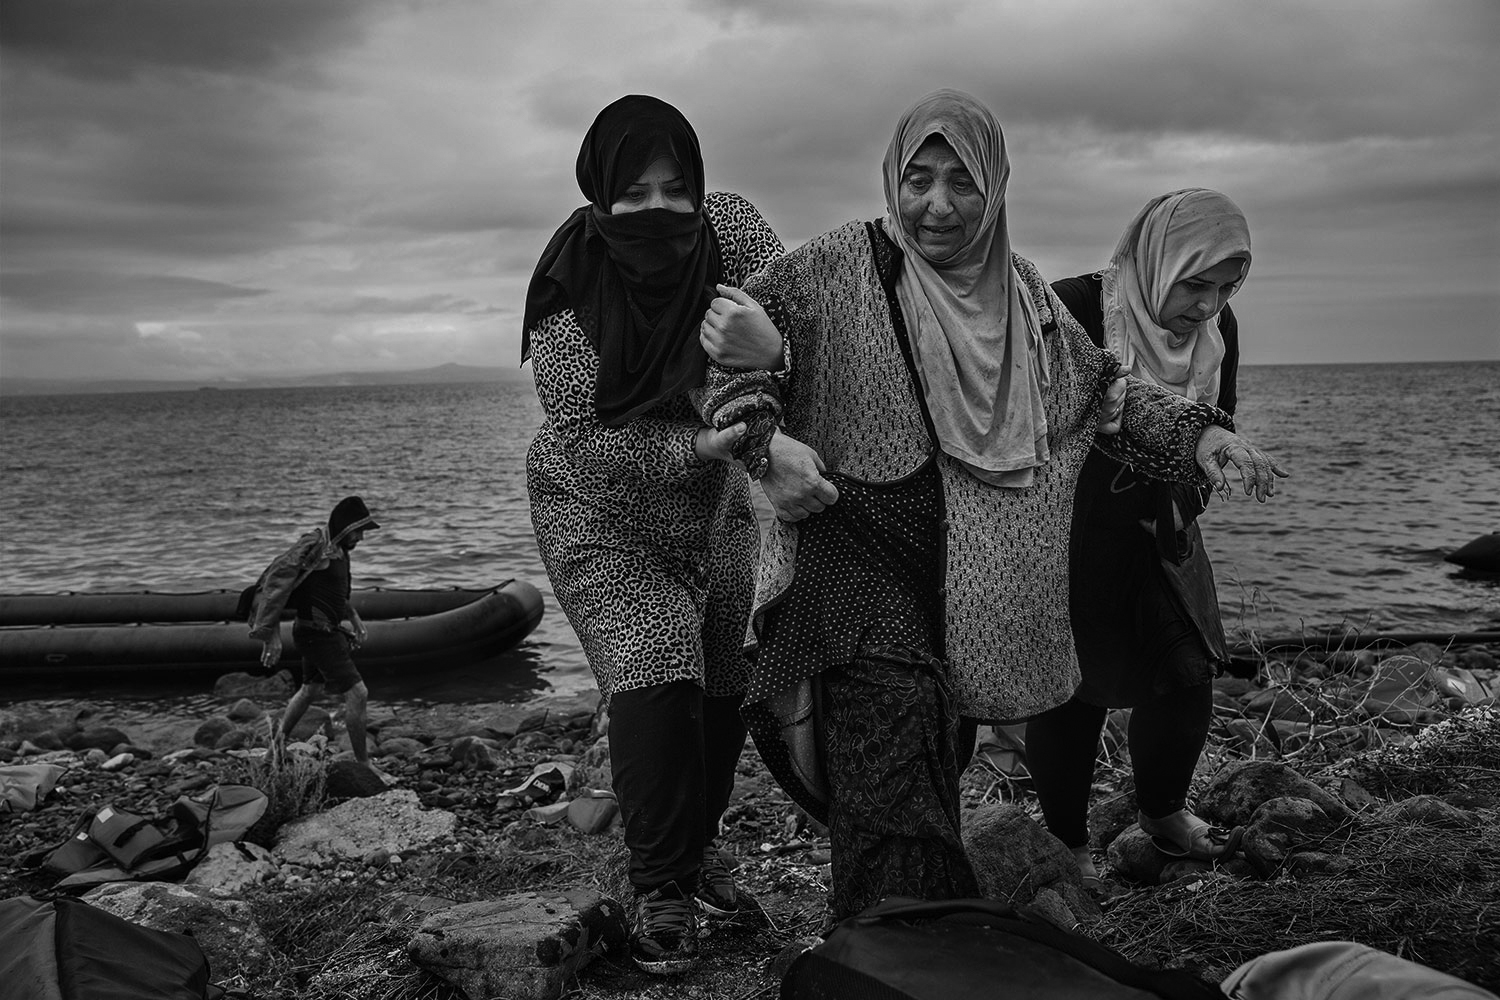 Two women help a third scramble ashore after arriving on the beach in Lesbos, Greece, Sept. 23, 2015.